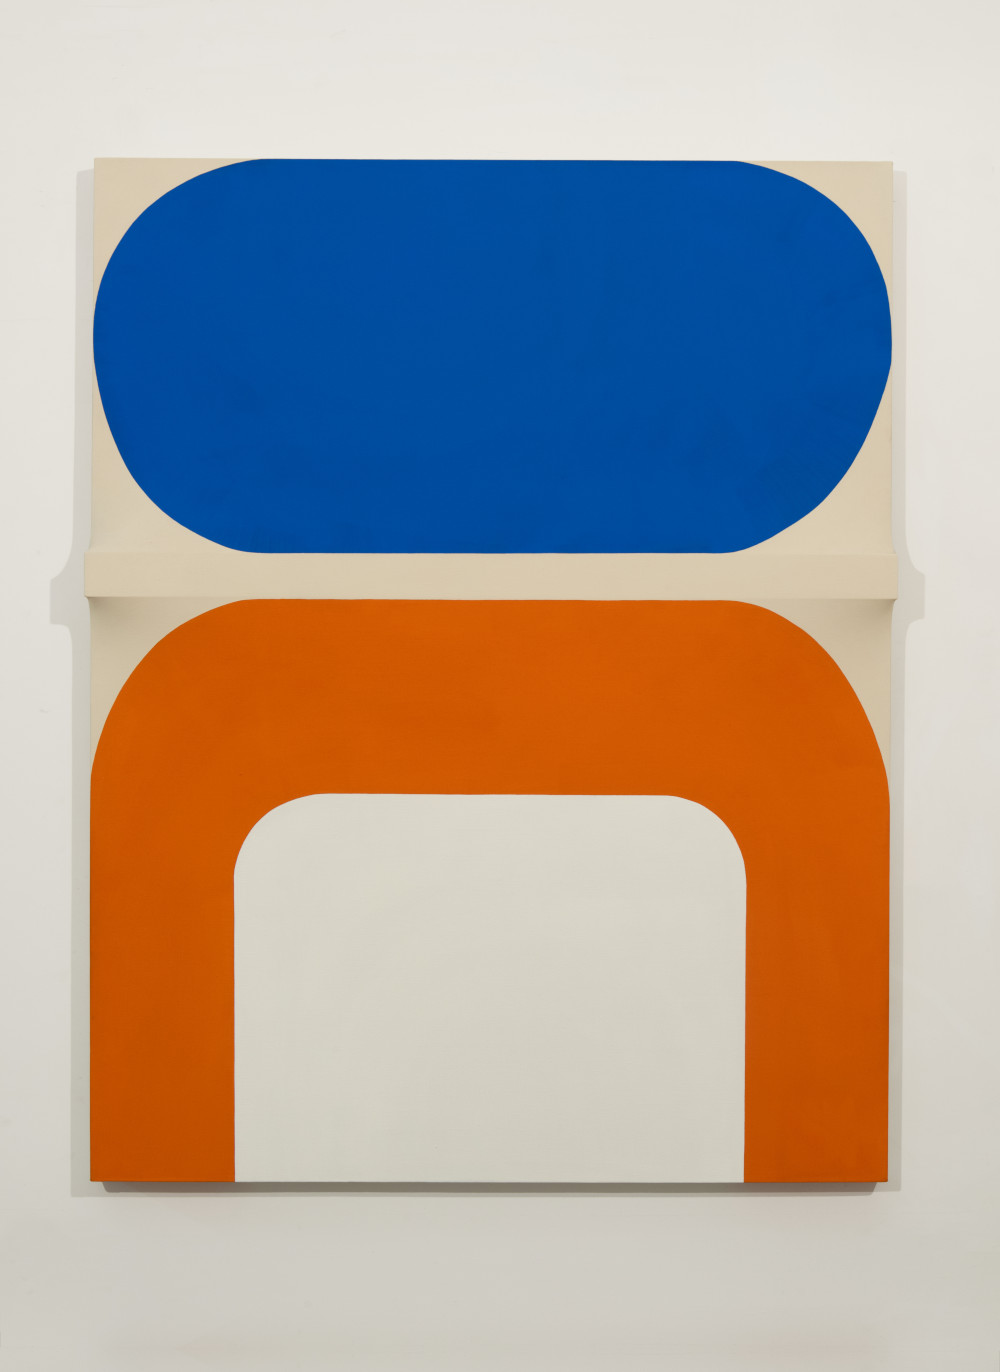 Sven Lukin (b. 1934), Untitled, 1962–3. Oil on canvas construction 63 5/8 (H) x 49 3/4 (W) x 4 1/2 (D) inches